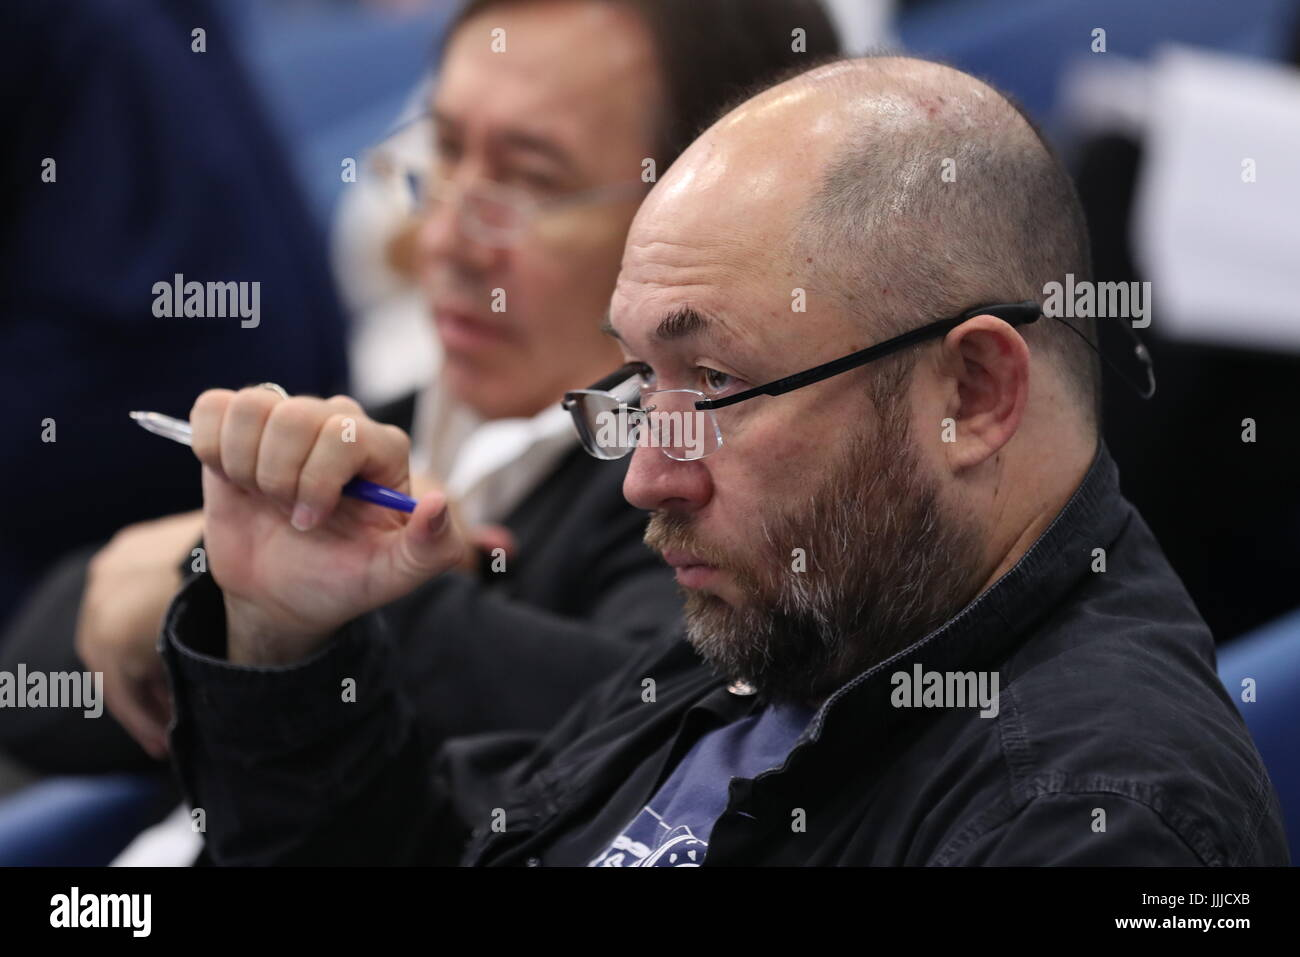 Moscow, Russia. 20th July, 2017. Film director and producer Timur Bekmambetov during a presentational event for - Stock Image